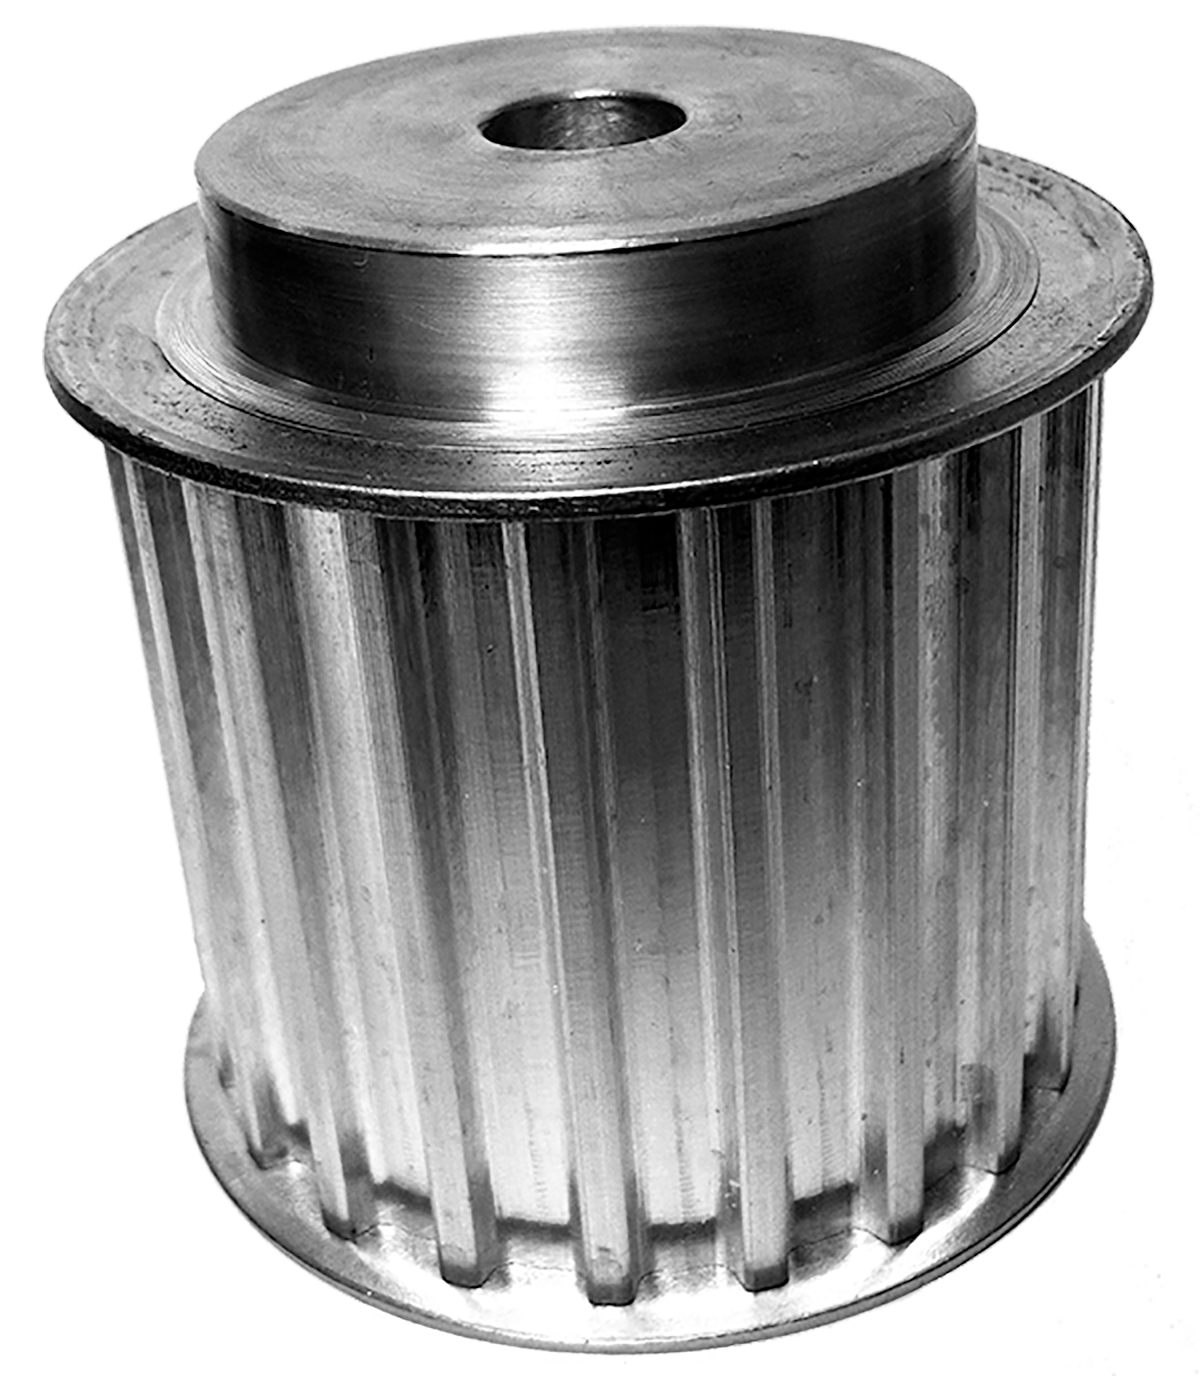 66AT10/32-2 - Aluminum Metric Pulleys